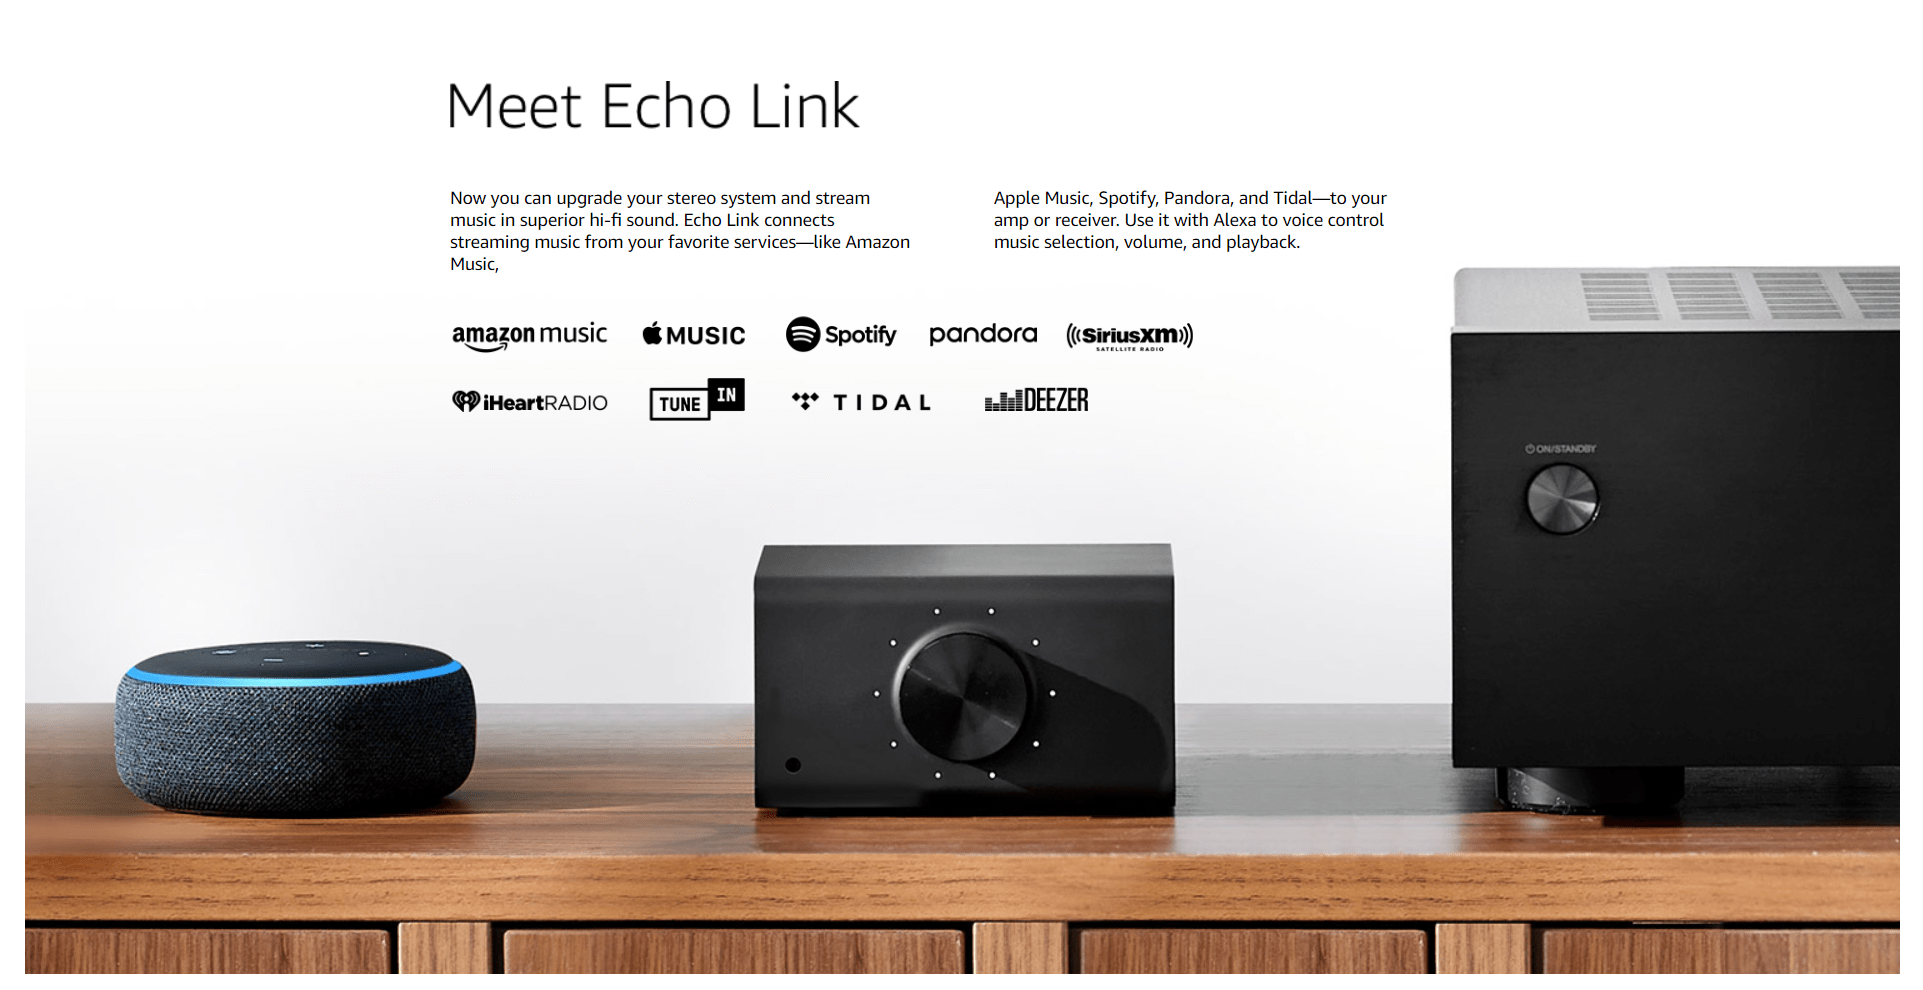 Echo Link - Stream hi-fi music to your stereo system - CAMBO QUICK